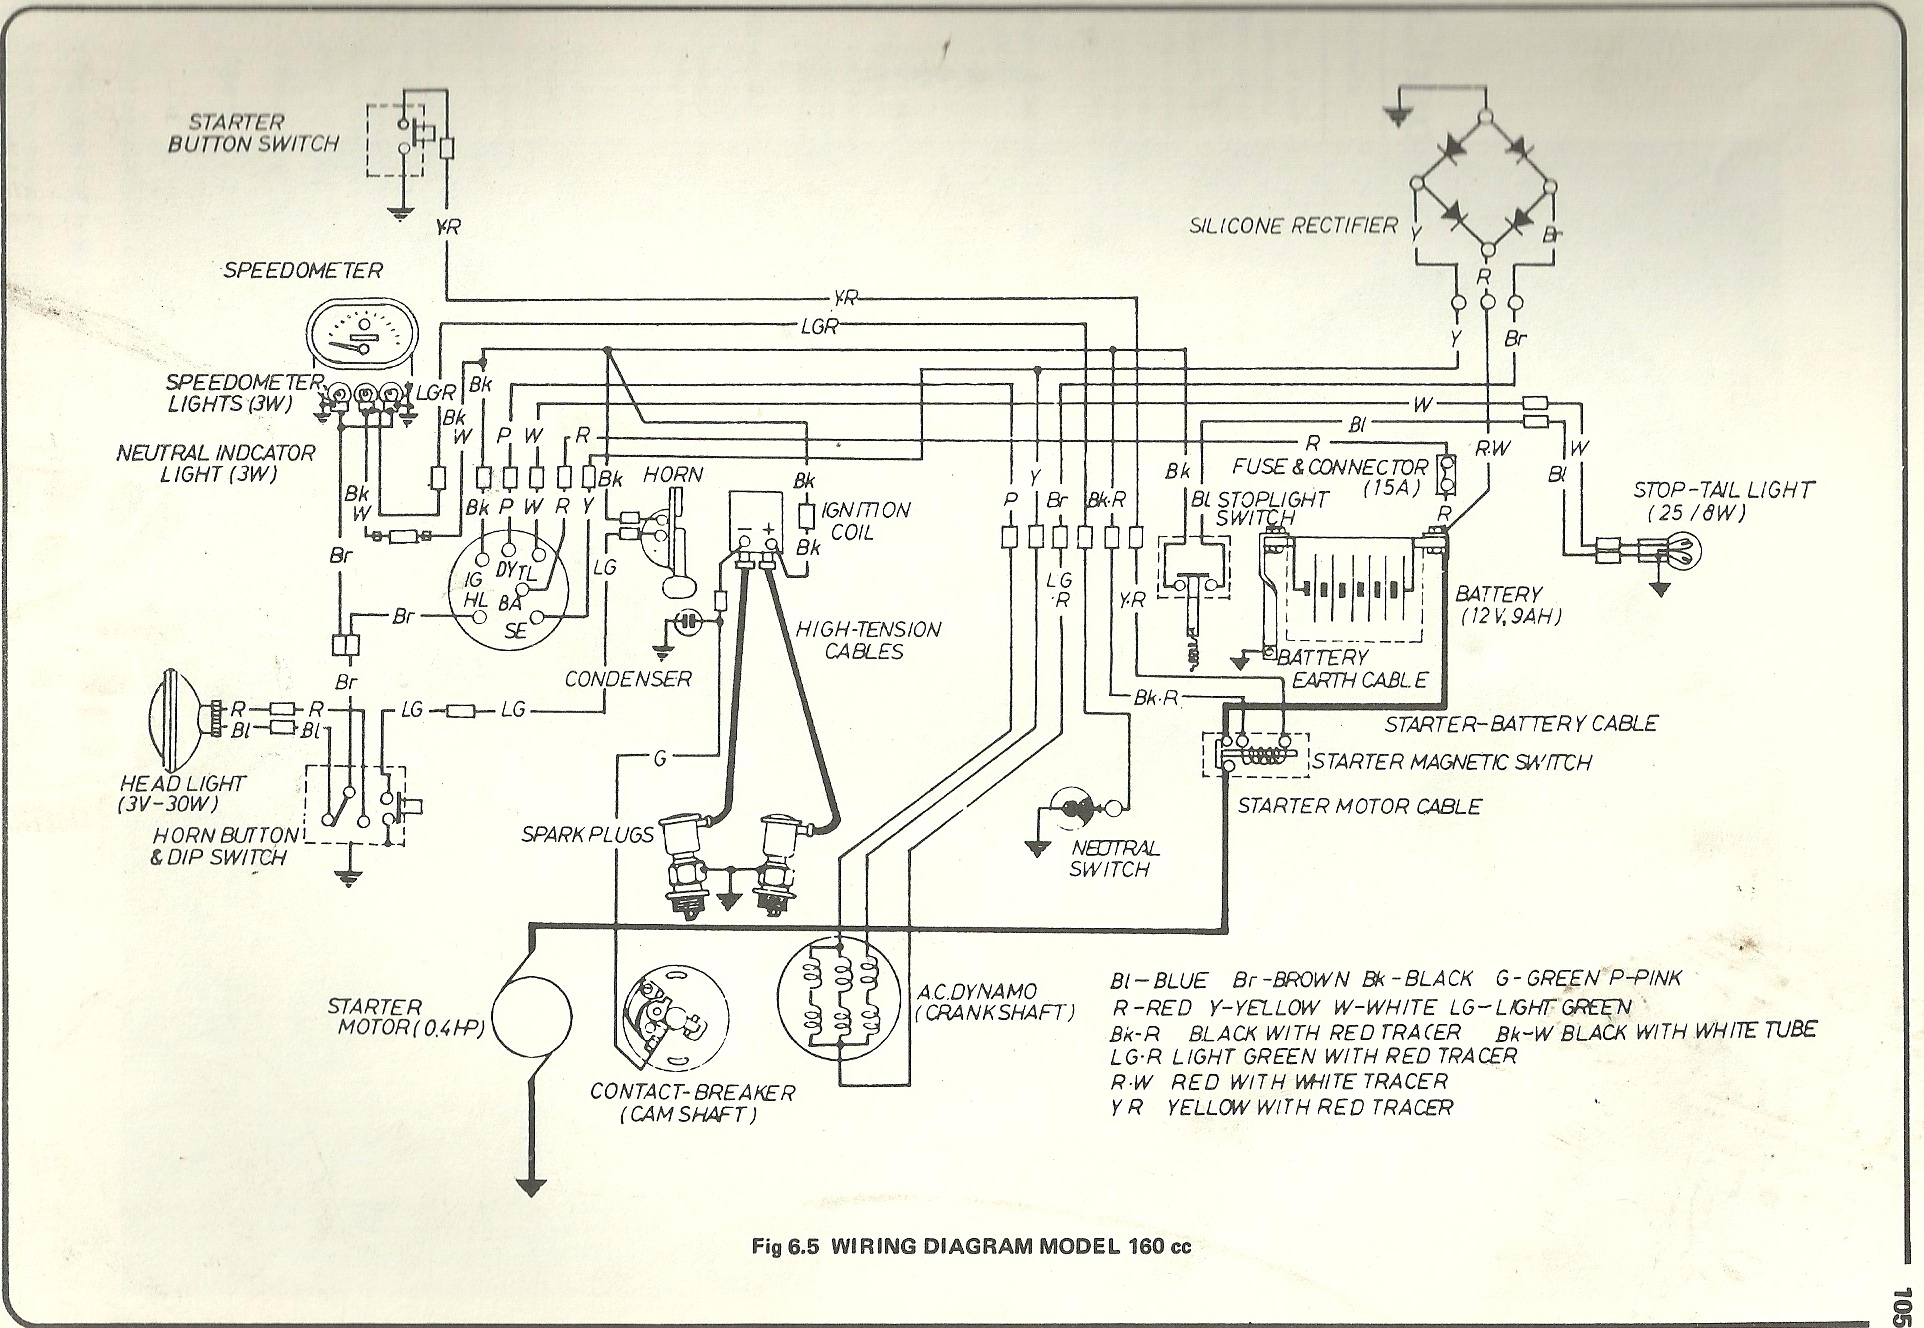 [QMVU_8575]  Wiring Diagrams | Honda Cb160 Wiring Diagram |  | Oregon Motorcycle Parts